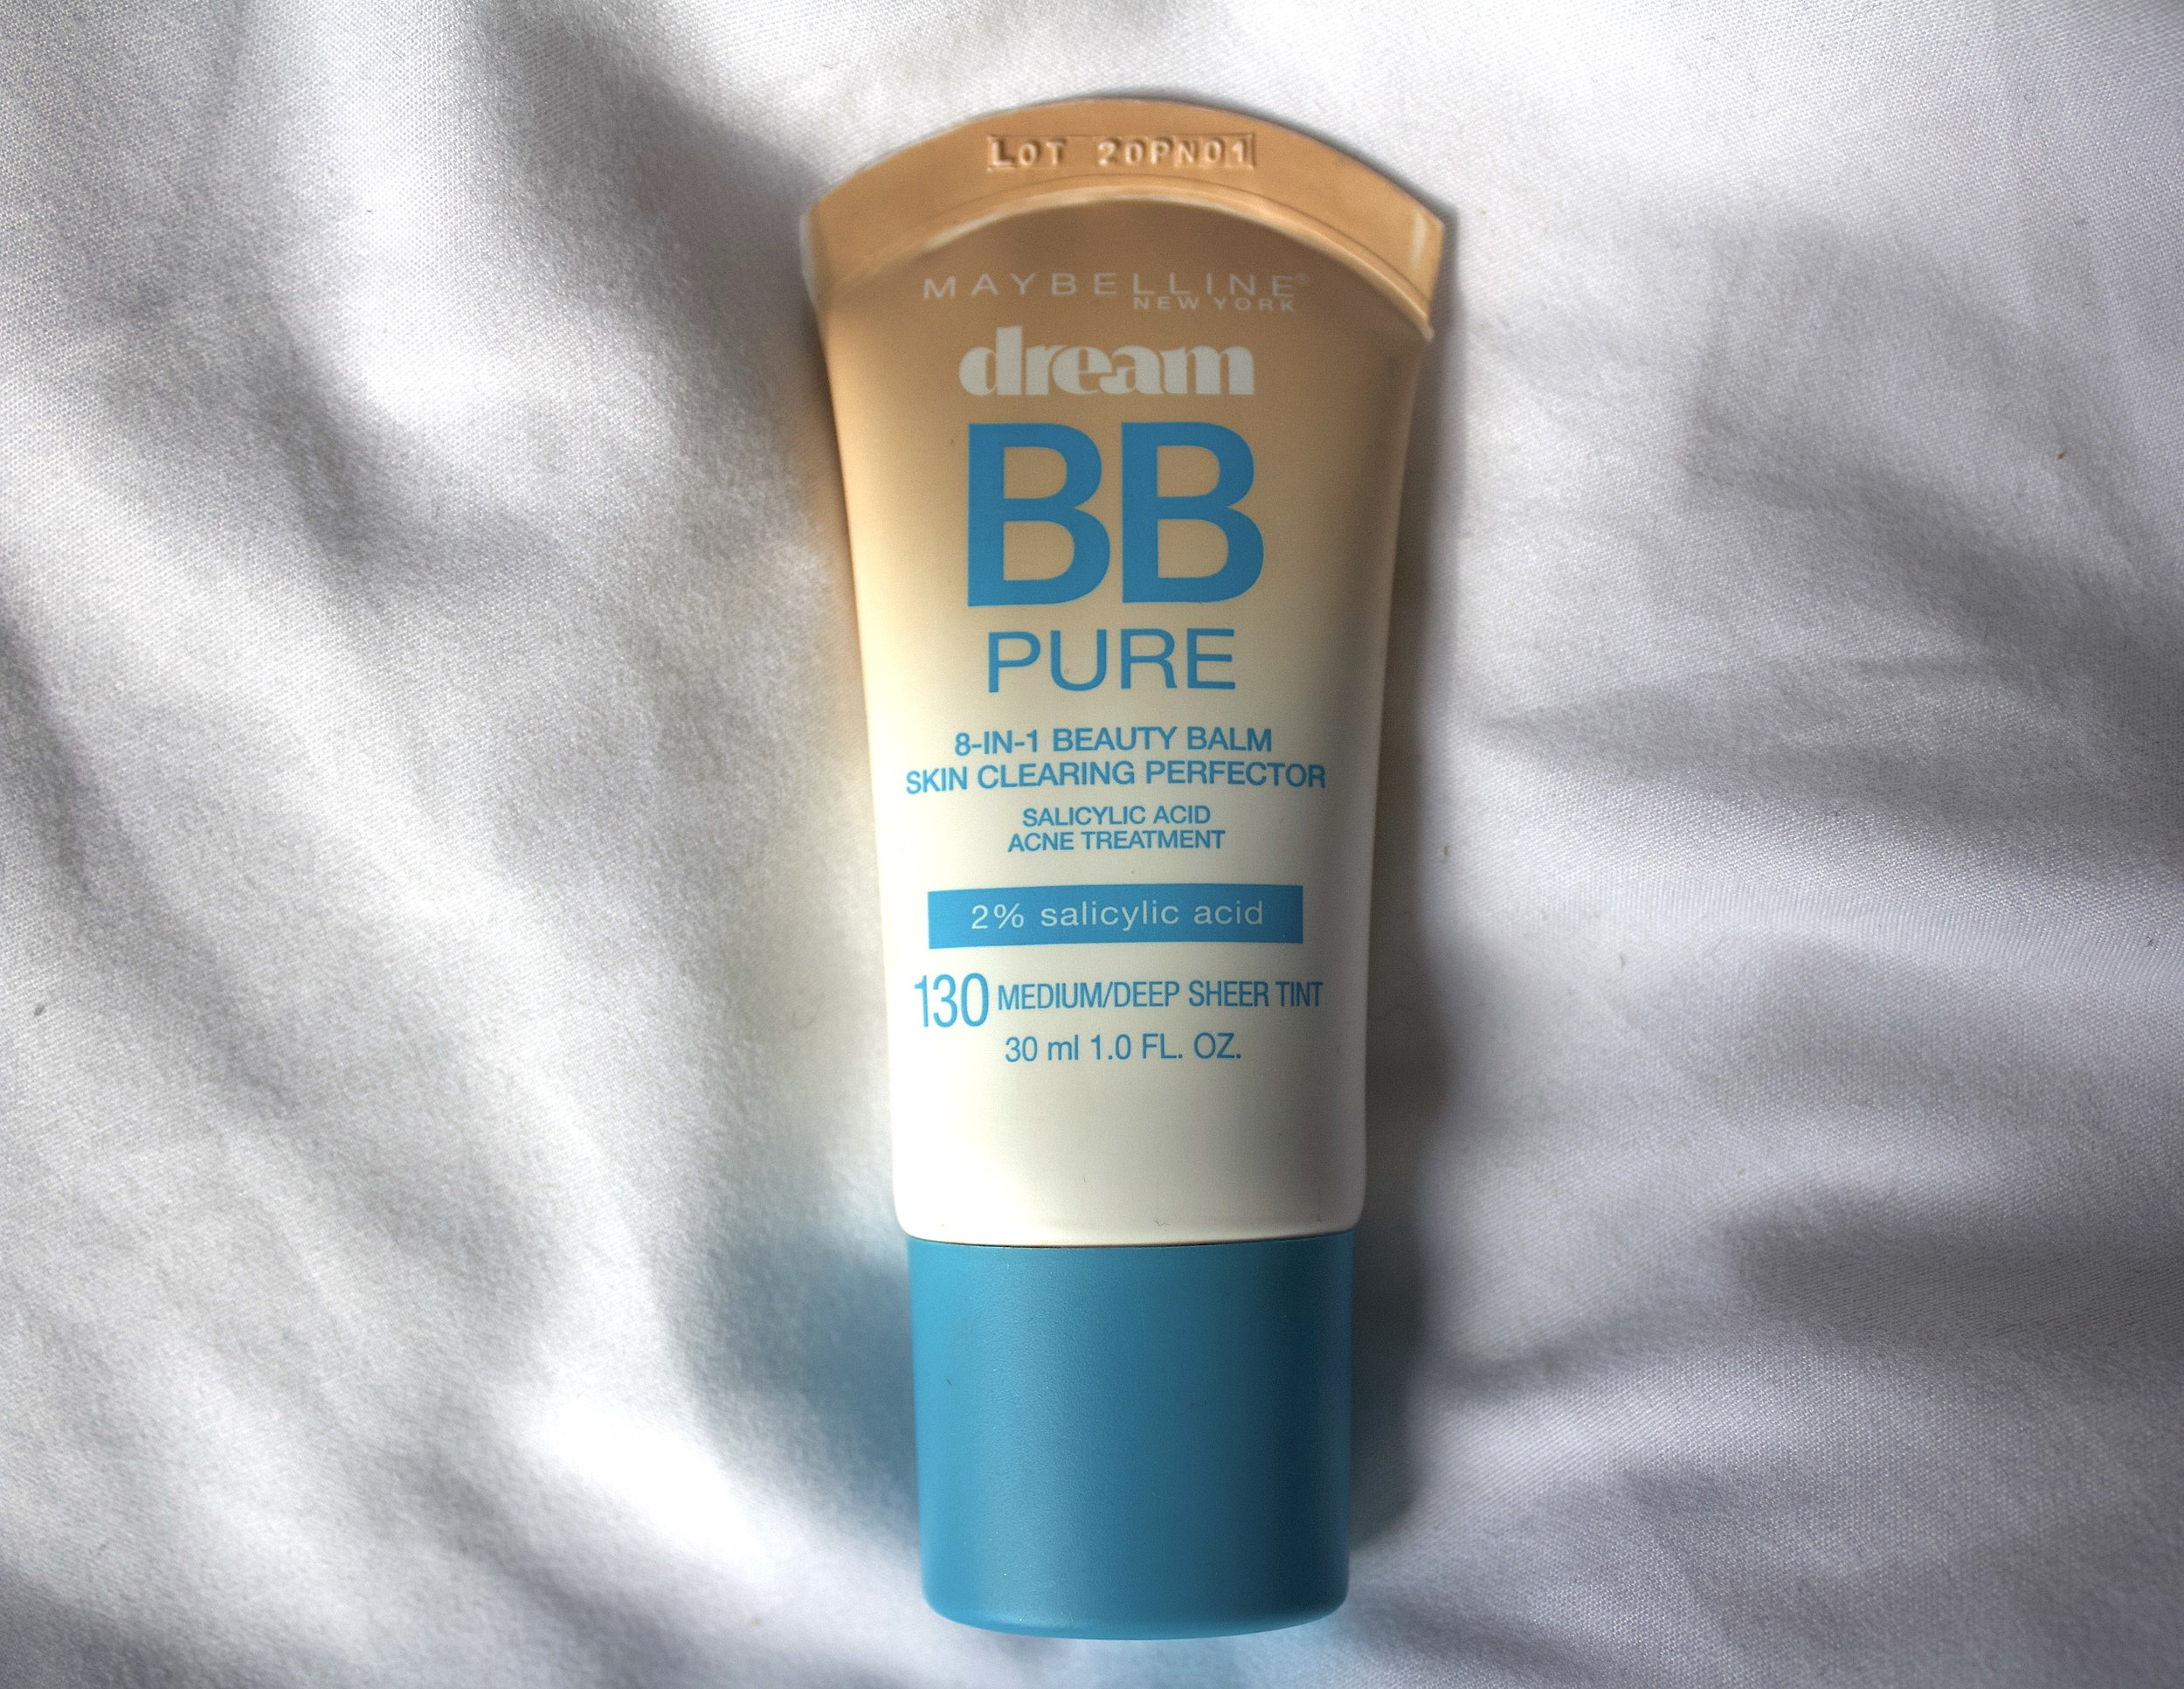 Maybelline BB Pure - $8.99